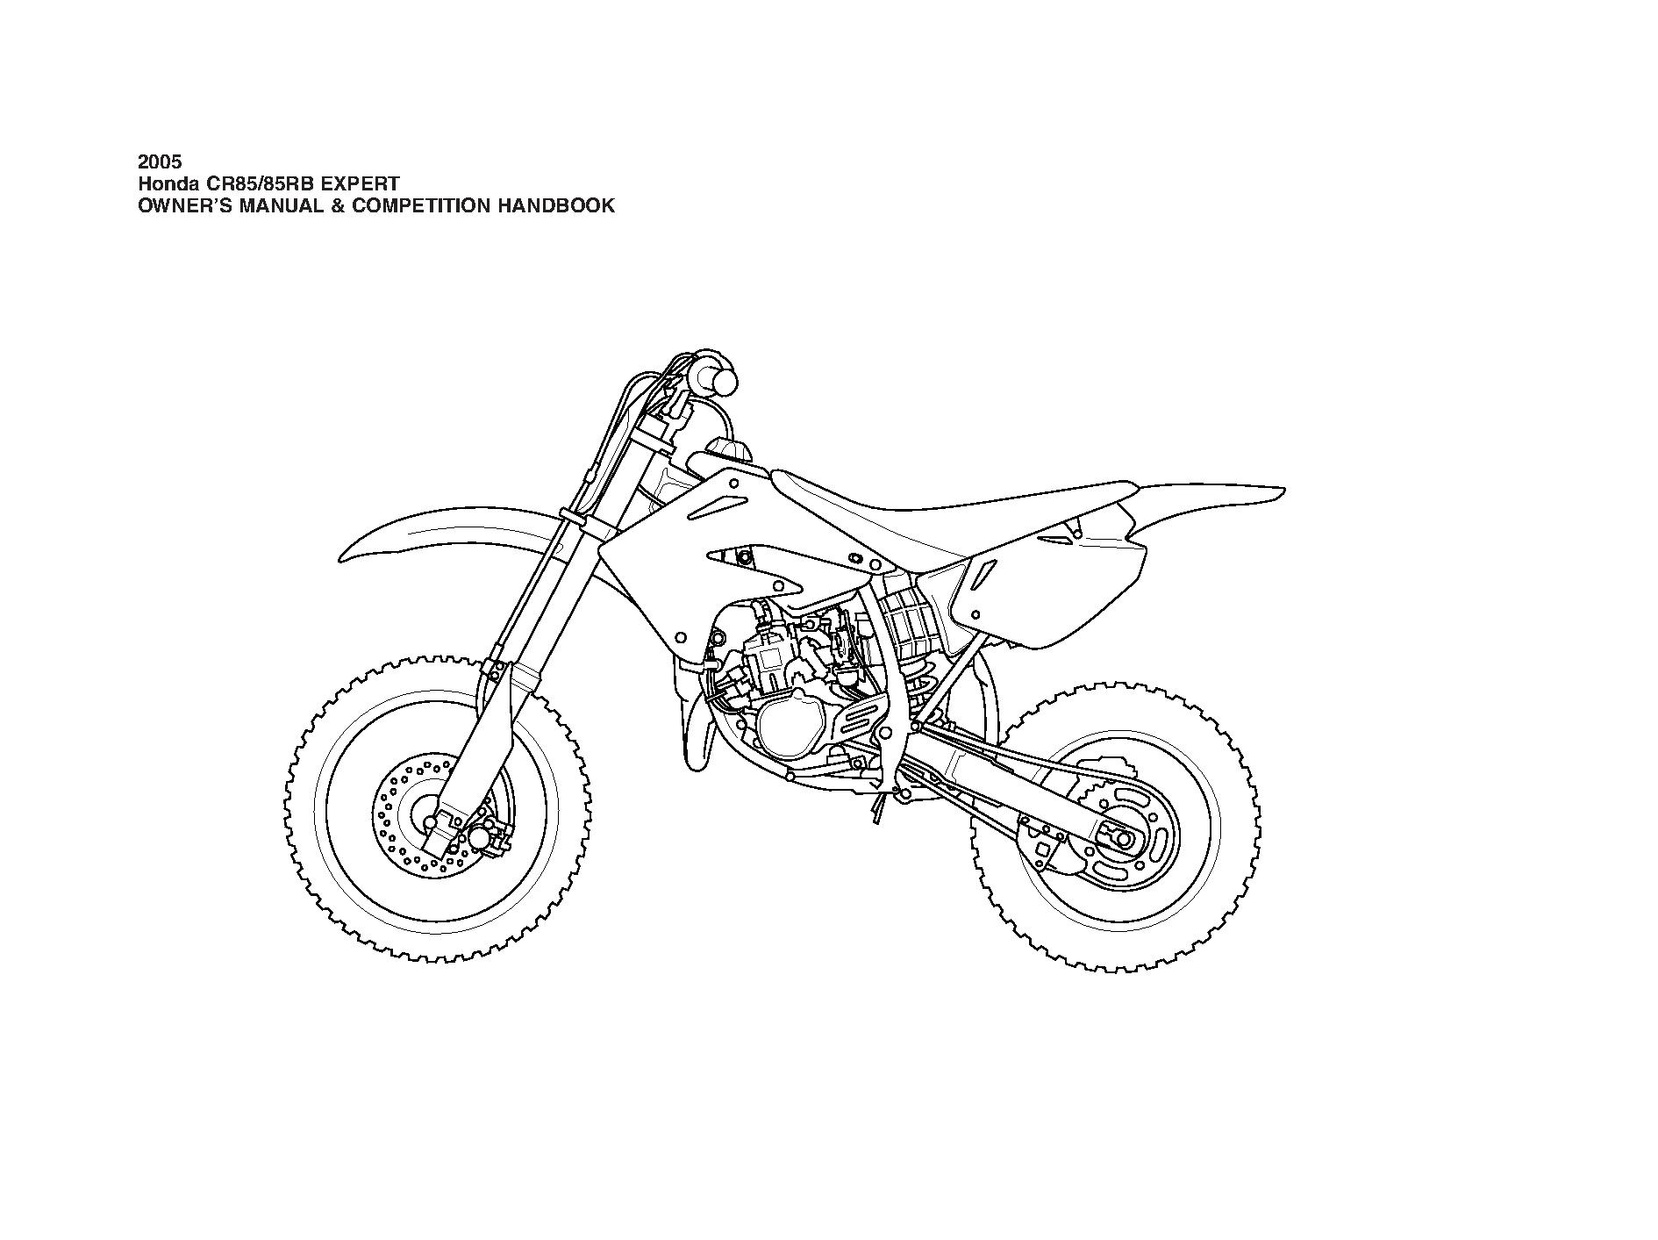 2005 Honda Cr85 85rb Expert Owner S Manual Competition Handbook